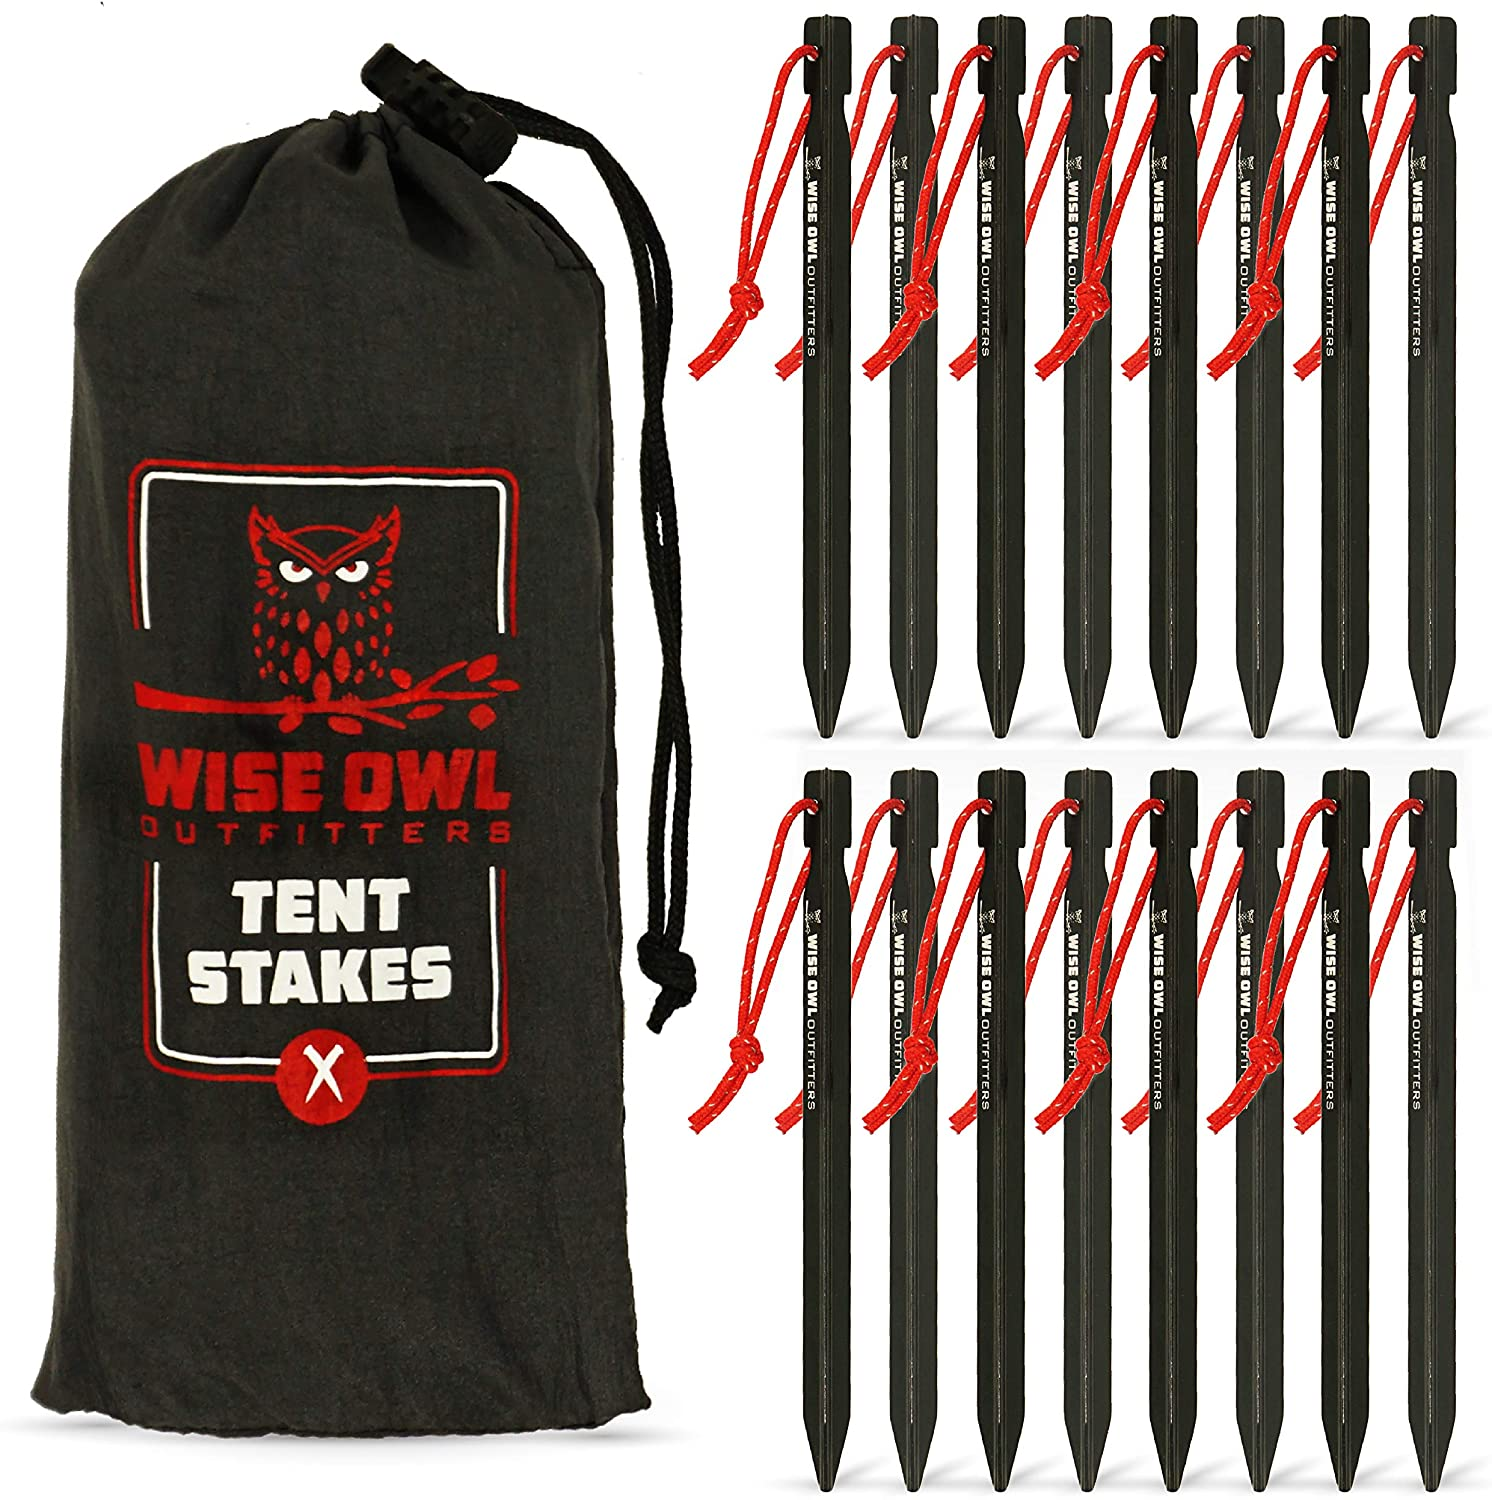 Wise Owl Outfitters Tent Stakes